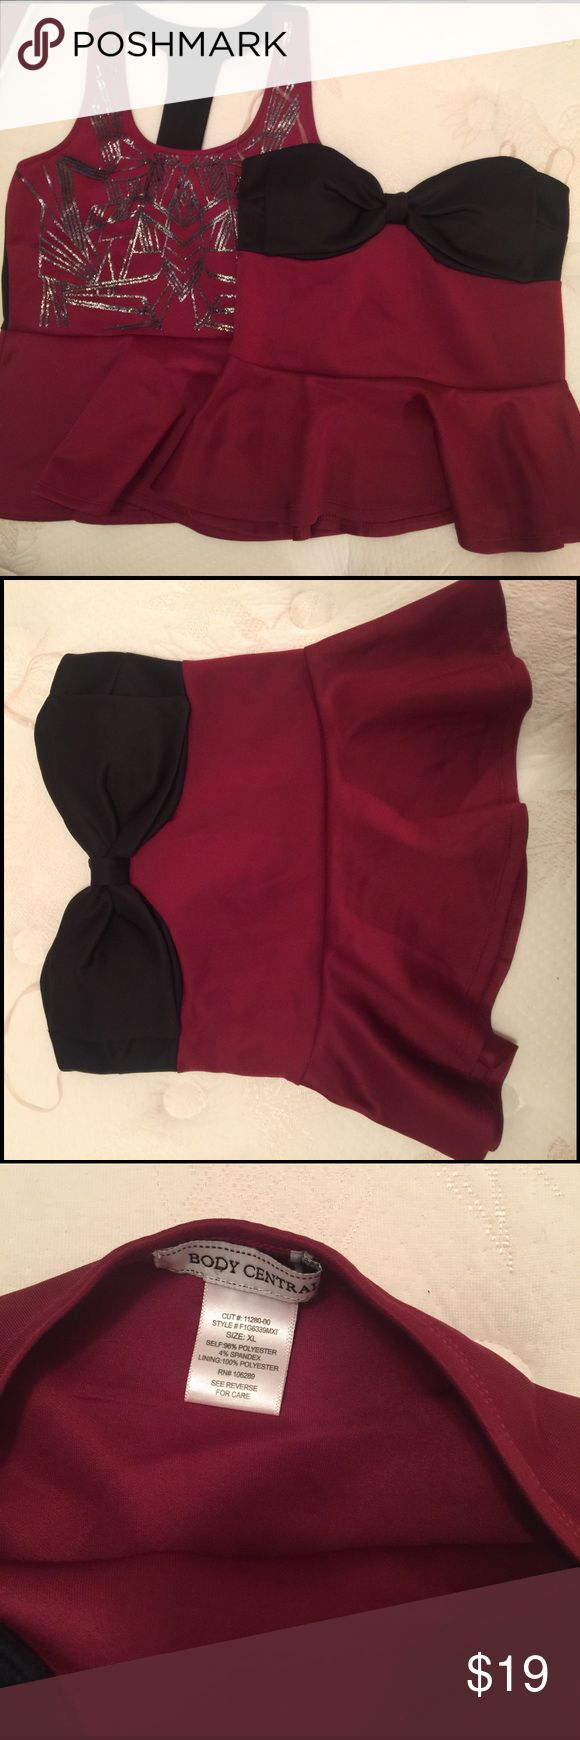 Body Central 2 Crop Tops Black and Garnet sz: Xl Body Central 2 Crop Tops Black and Garnet sz: Xl 1 has a bow and is Strapless the other one has black design on front and a t back. They both have a ruffle bottom. Never worn! Super cute! make an offer ❤ Body Central Tops Crop Tops